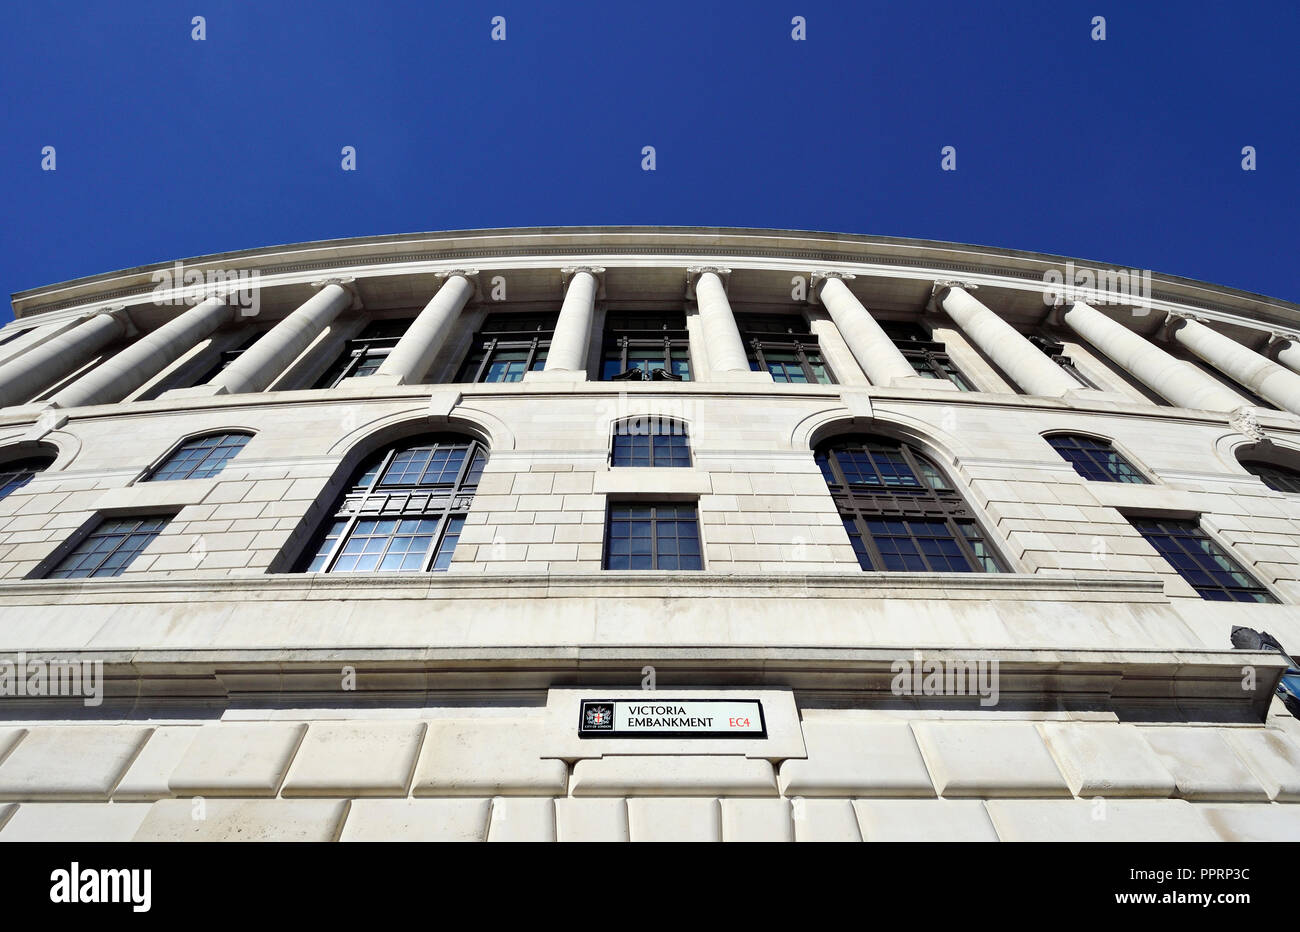 Unilever House (1933: Neoclassical Art Deco) at 100, Victoria Embankment. London, England, UK. Stock Photo